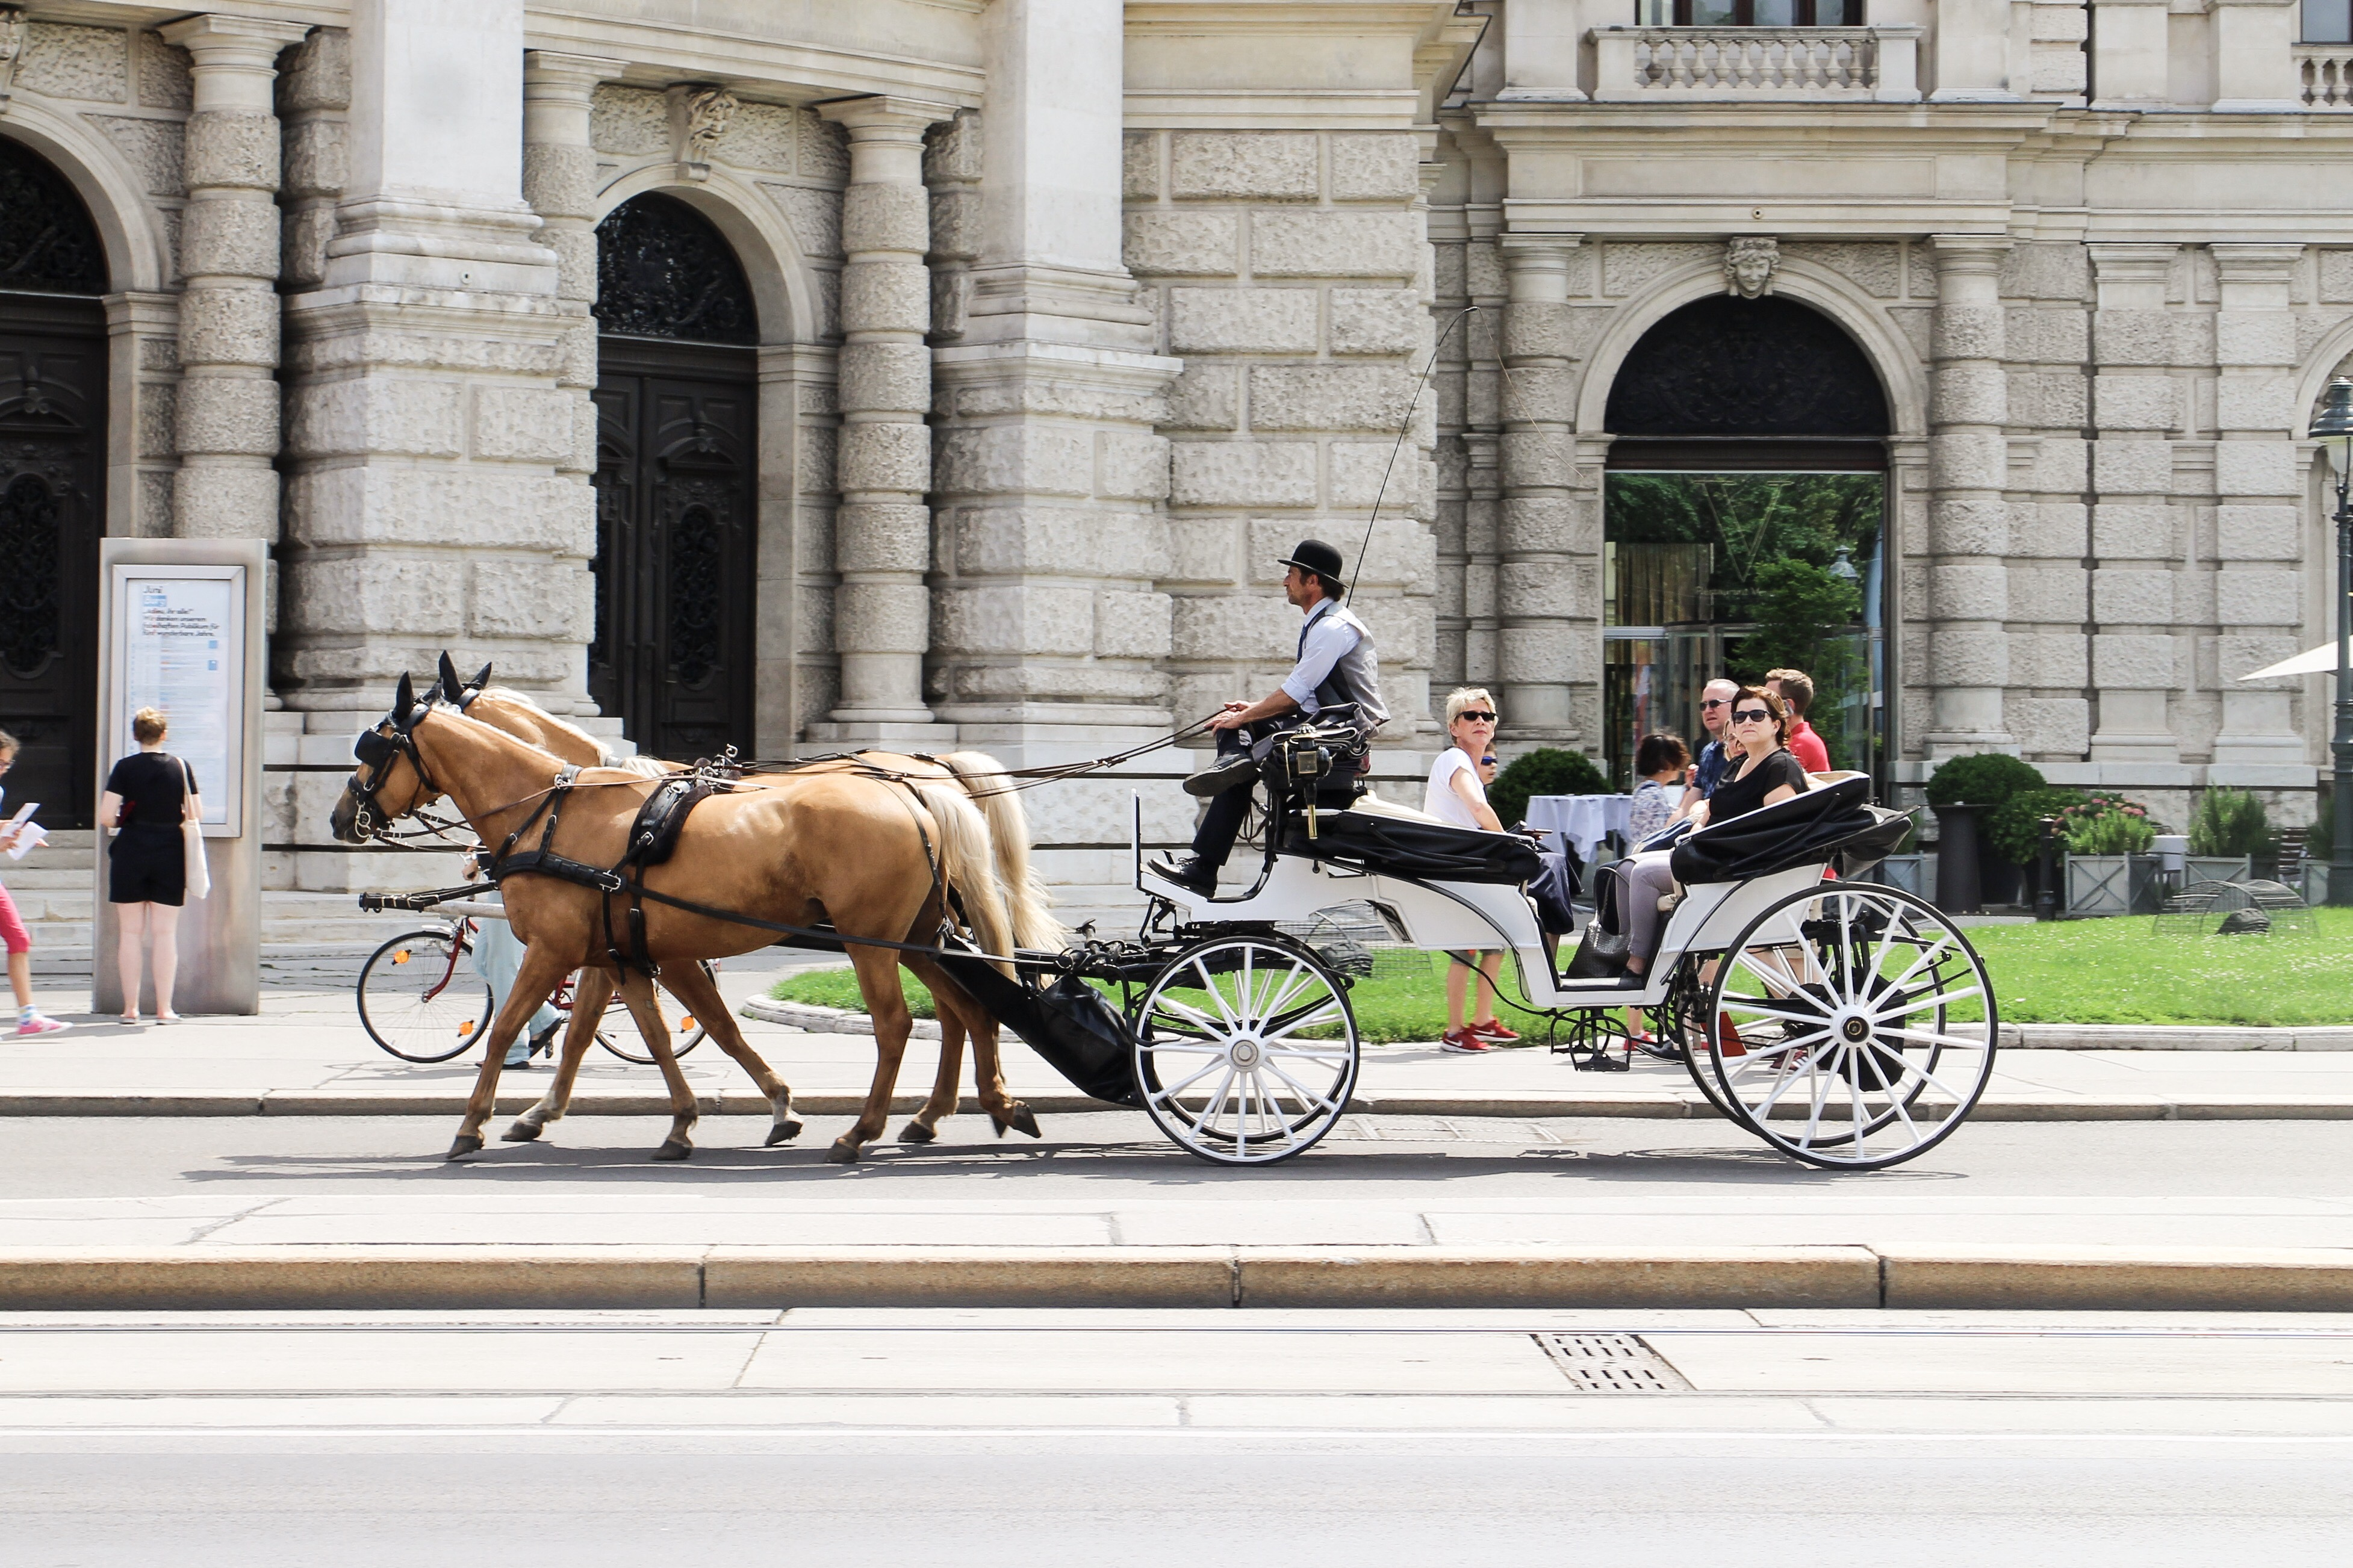 Three Perfect Days in Vienna: Horse-drawn cariage